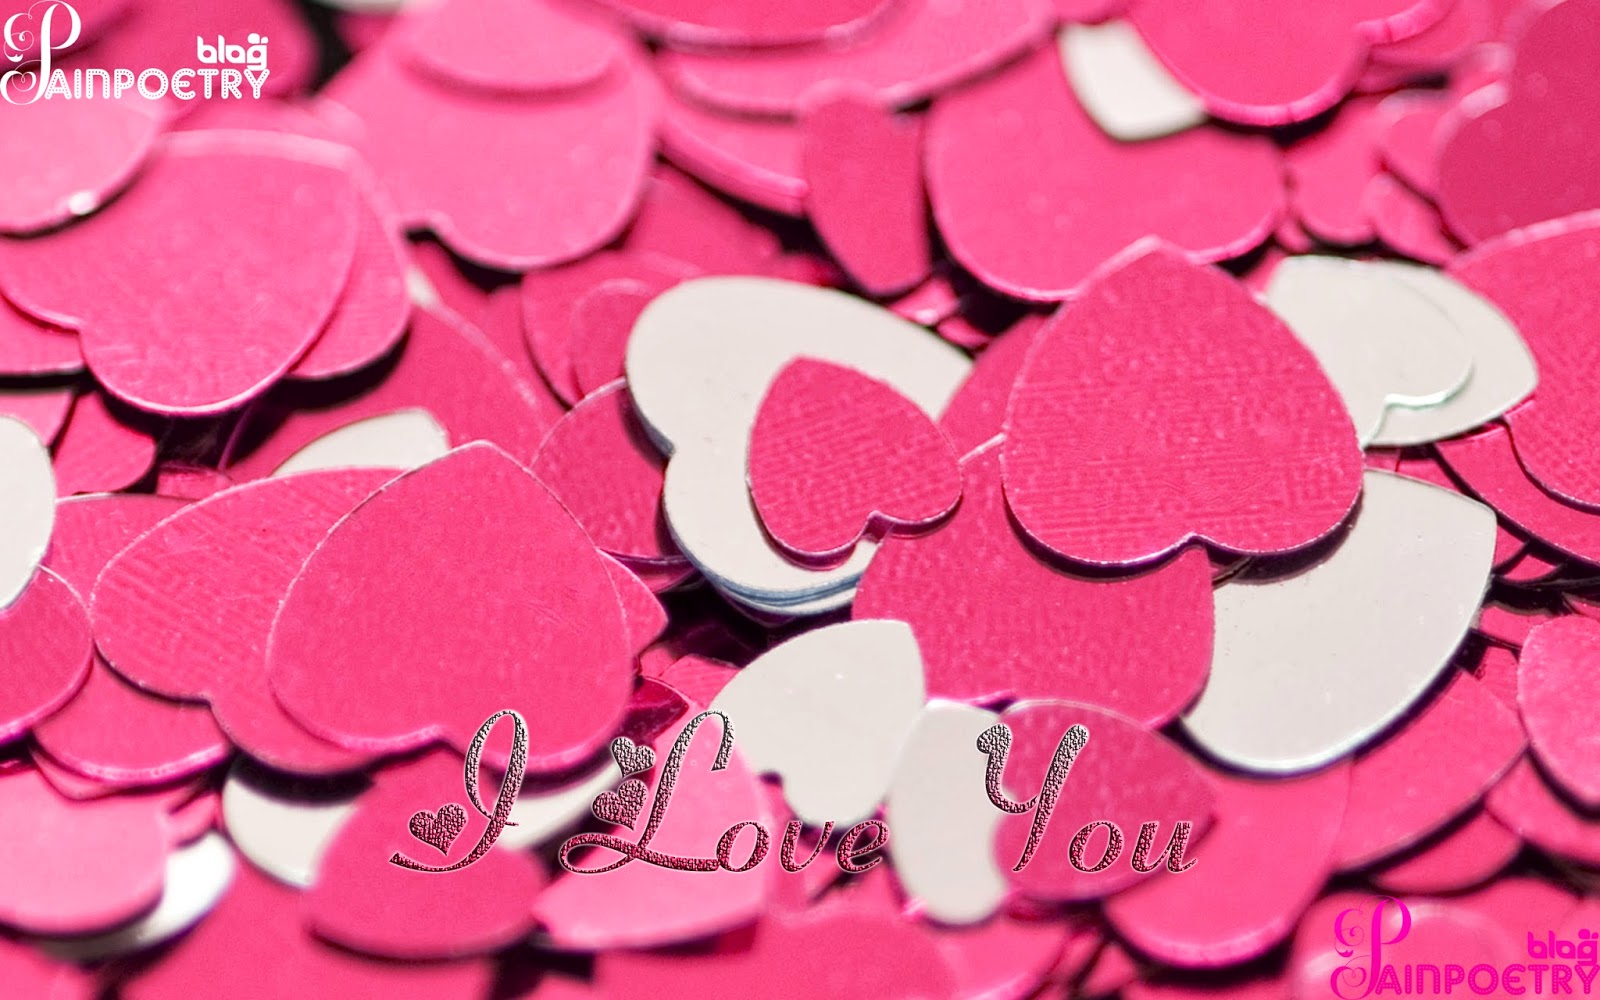 Love-Hearts-Photo-Image-Together-Are-Different-Colours-Wide-